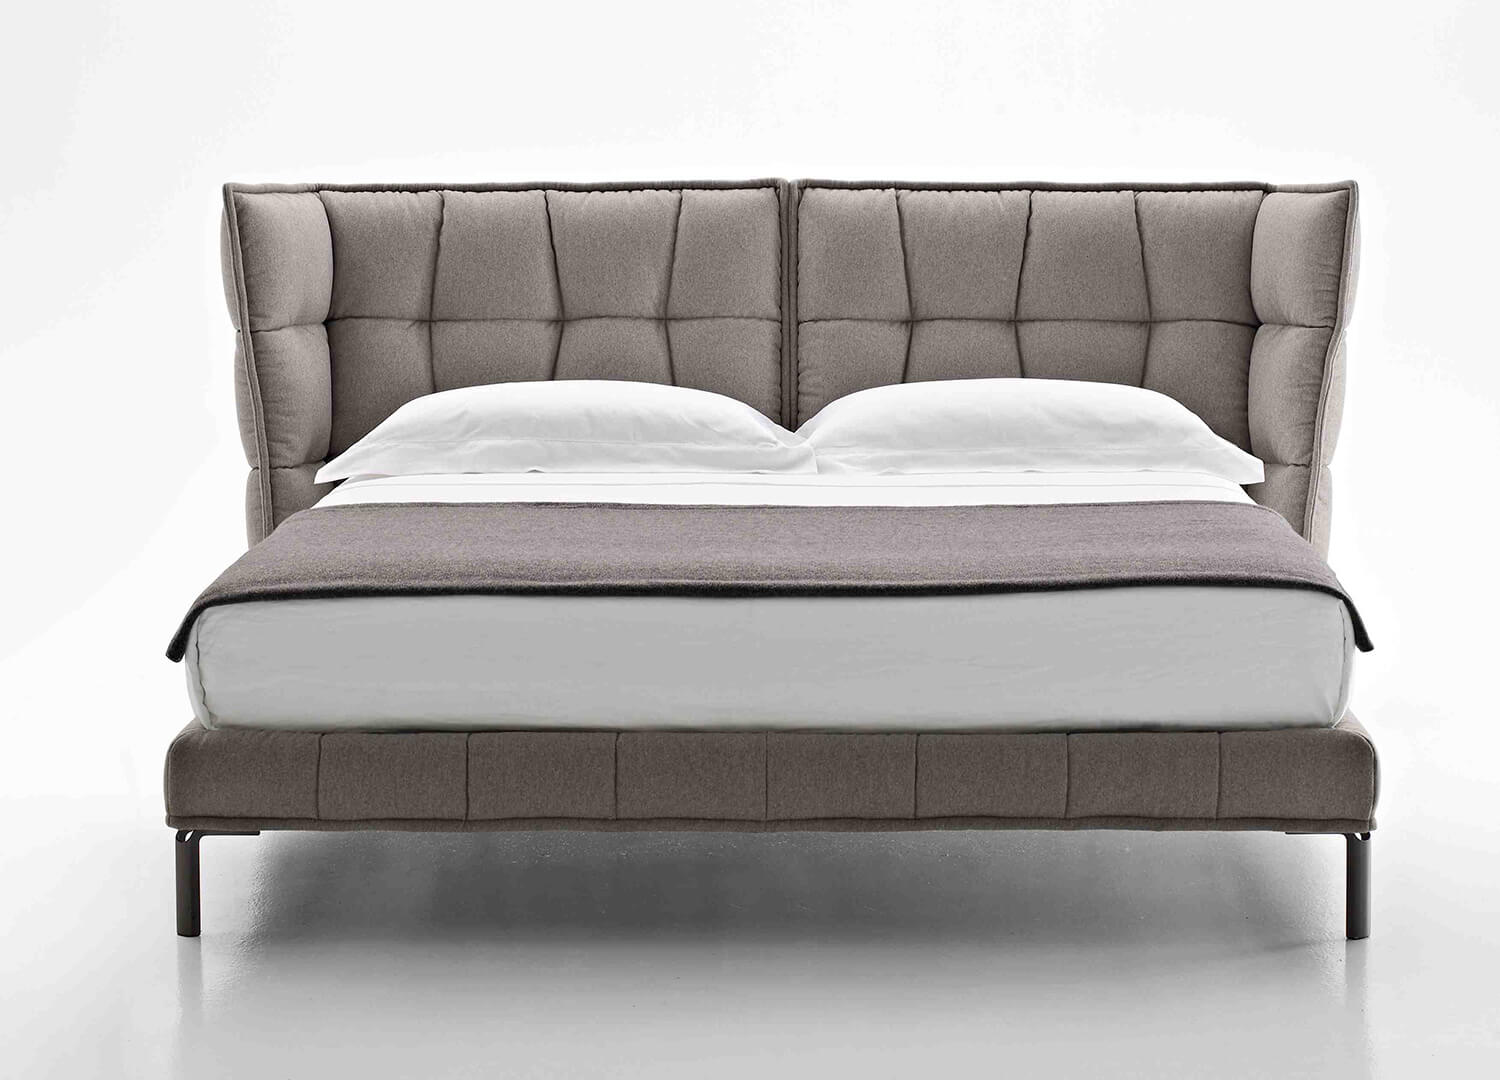 Husk Bed by Patricia Urquiola for B&B Italia | Est Design Directory